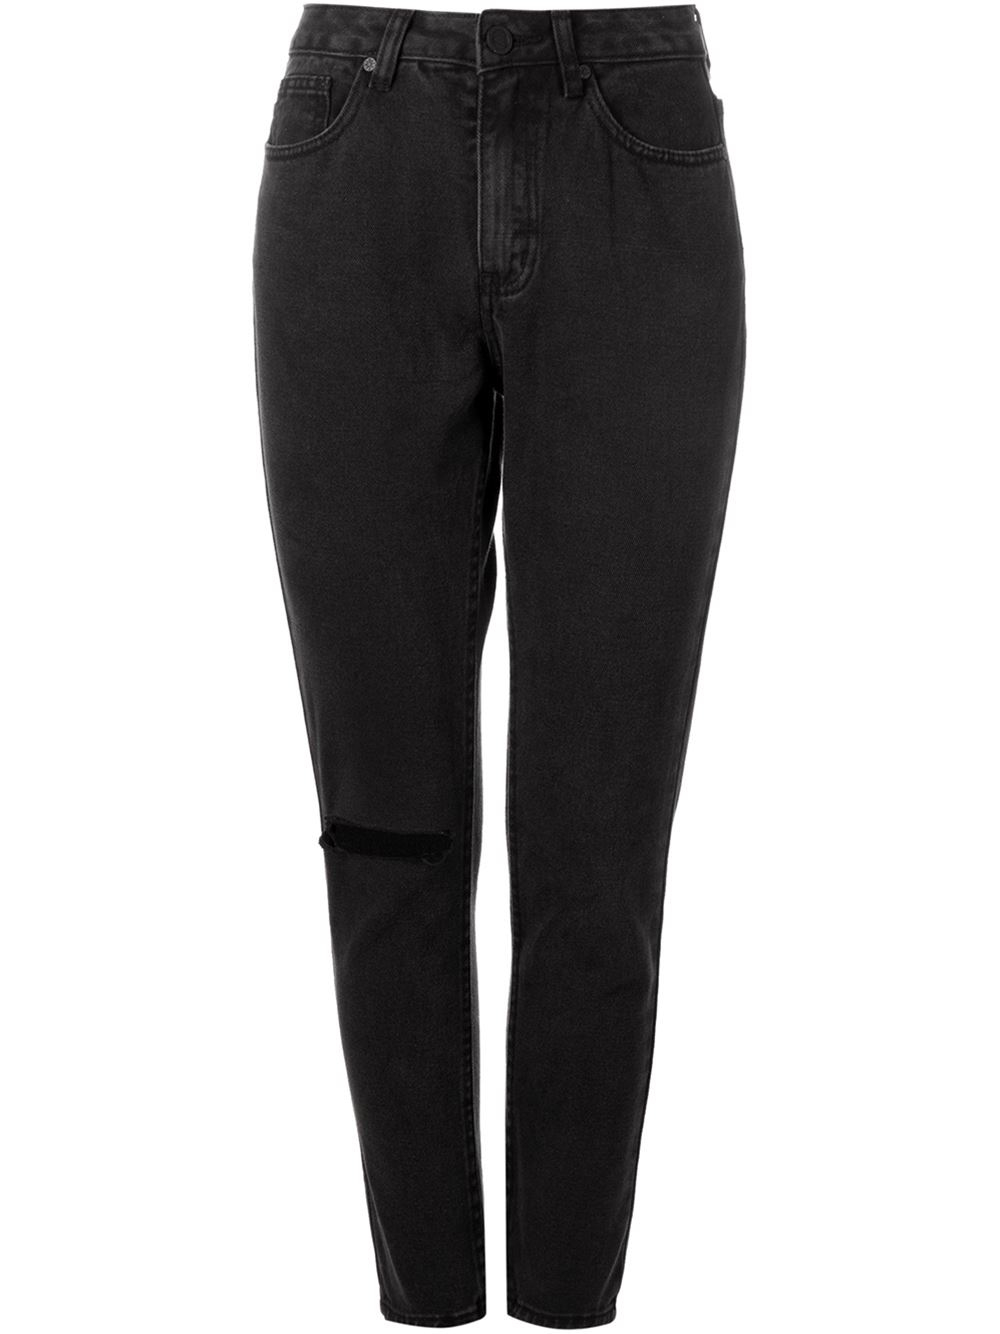 Lyst - Unif Distressed Jeans in Black